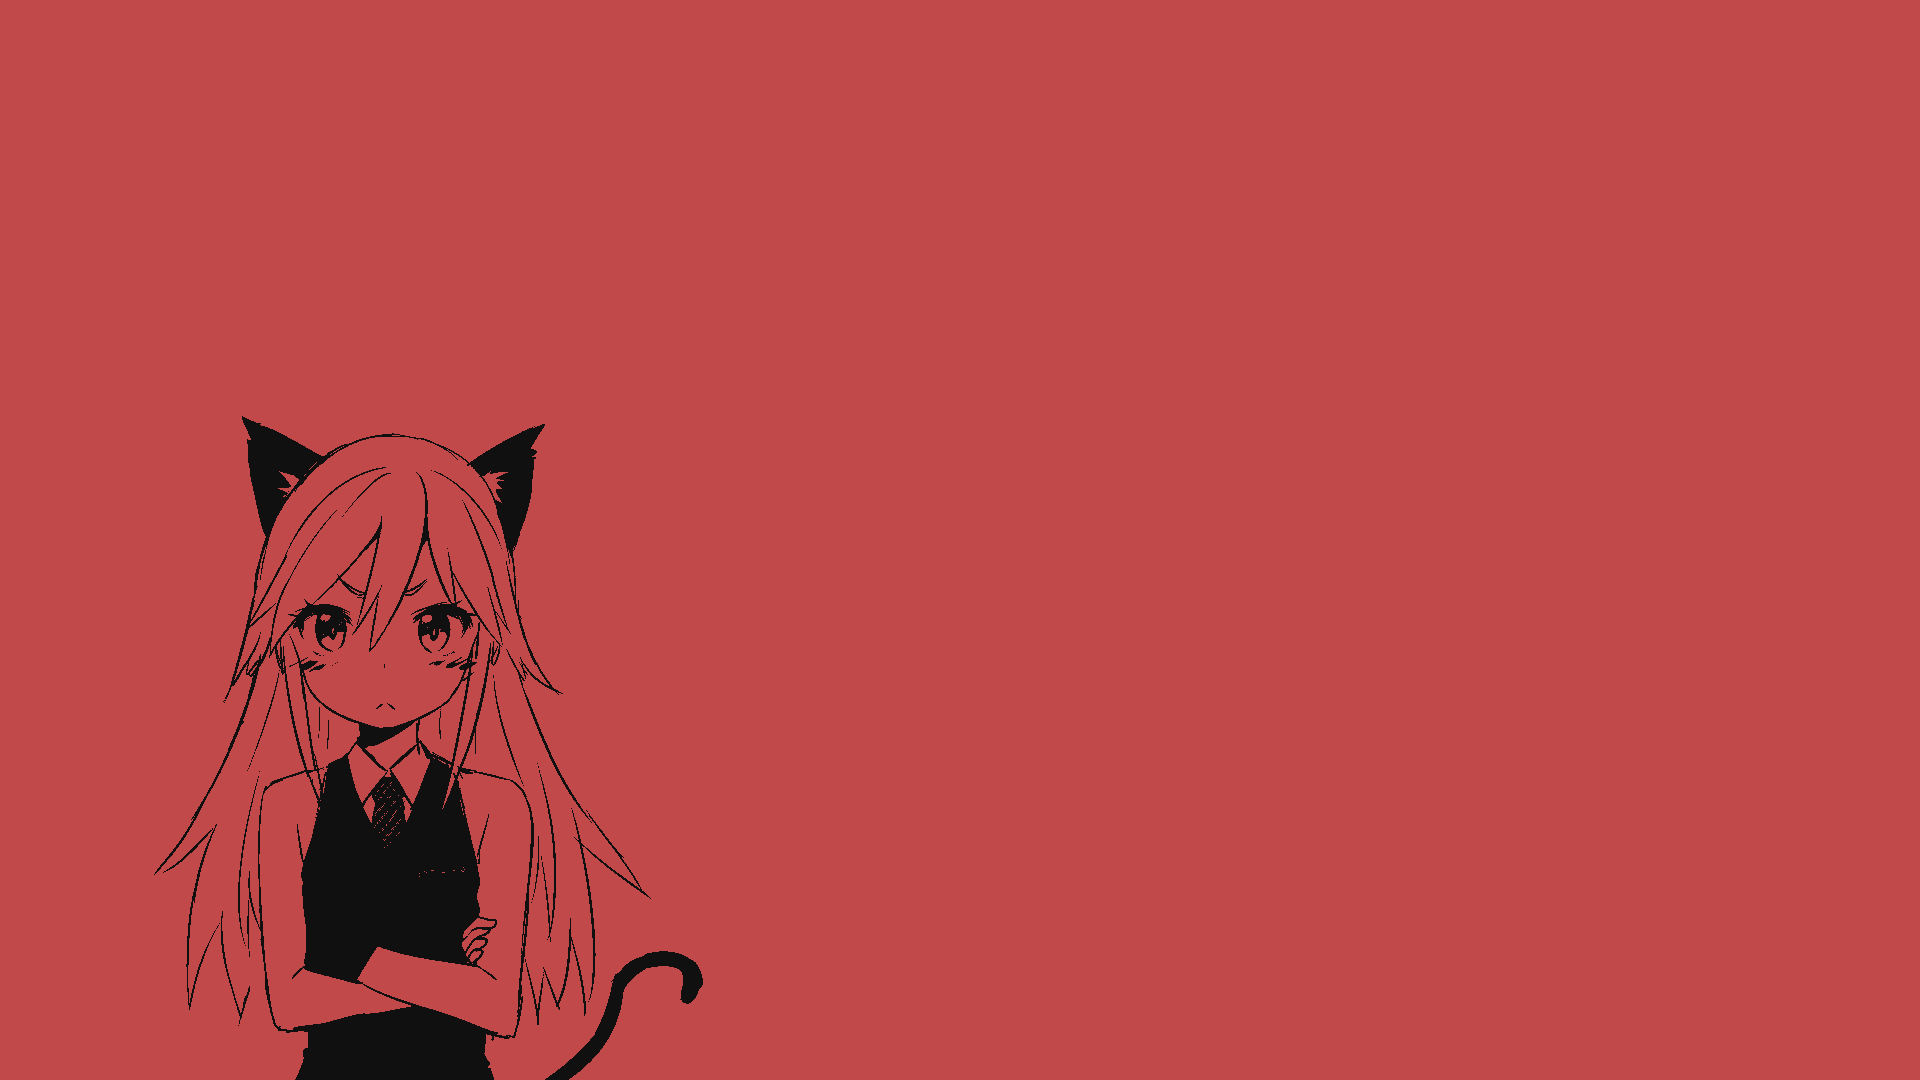 Backgrounds_The_girl_cat__animeОБЛОЖКА.png